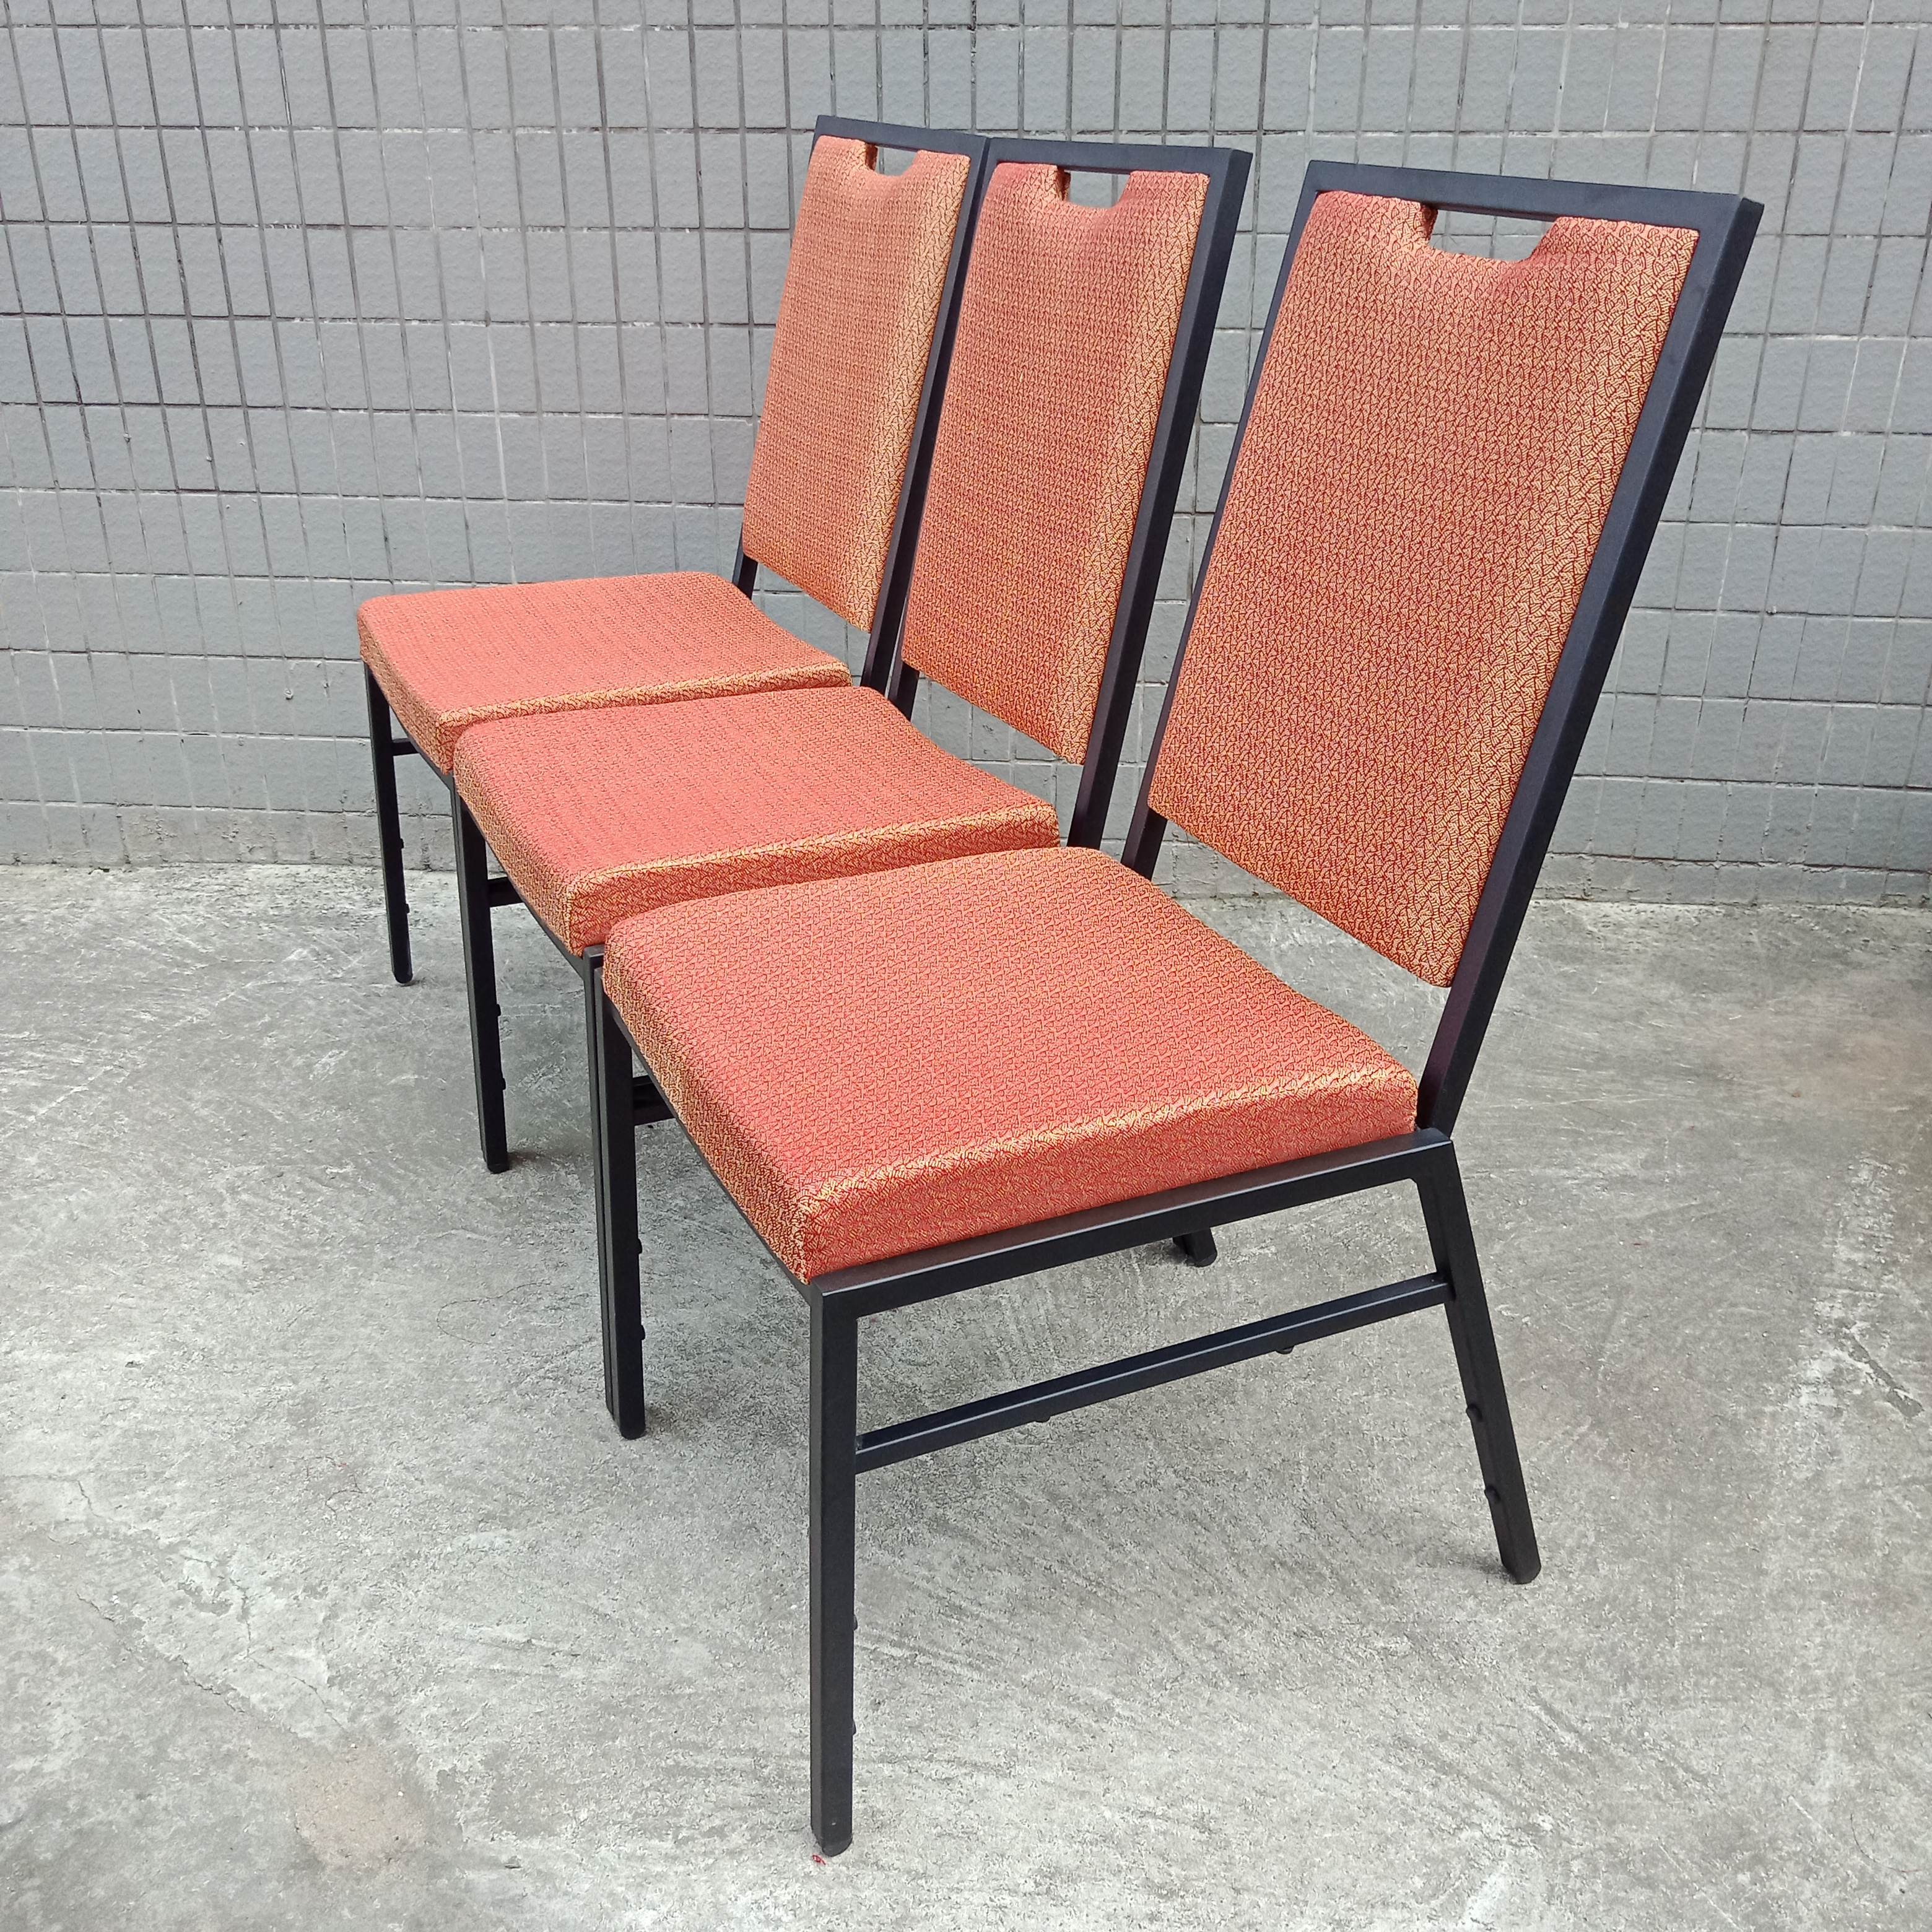 2017 wholesale price Outdoor Fabric Folding Chair - Stackable Banquet Chair SF-G03 – Jiangchang Furniture